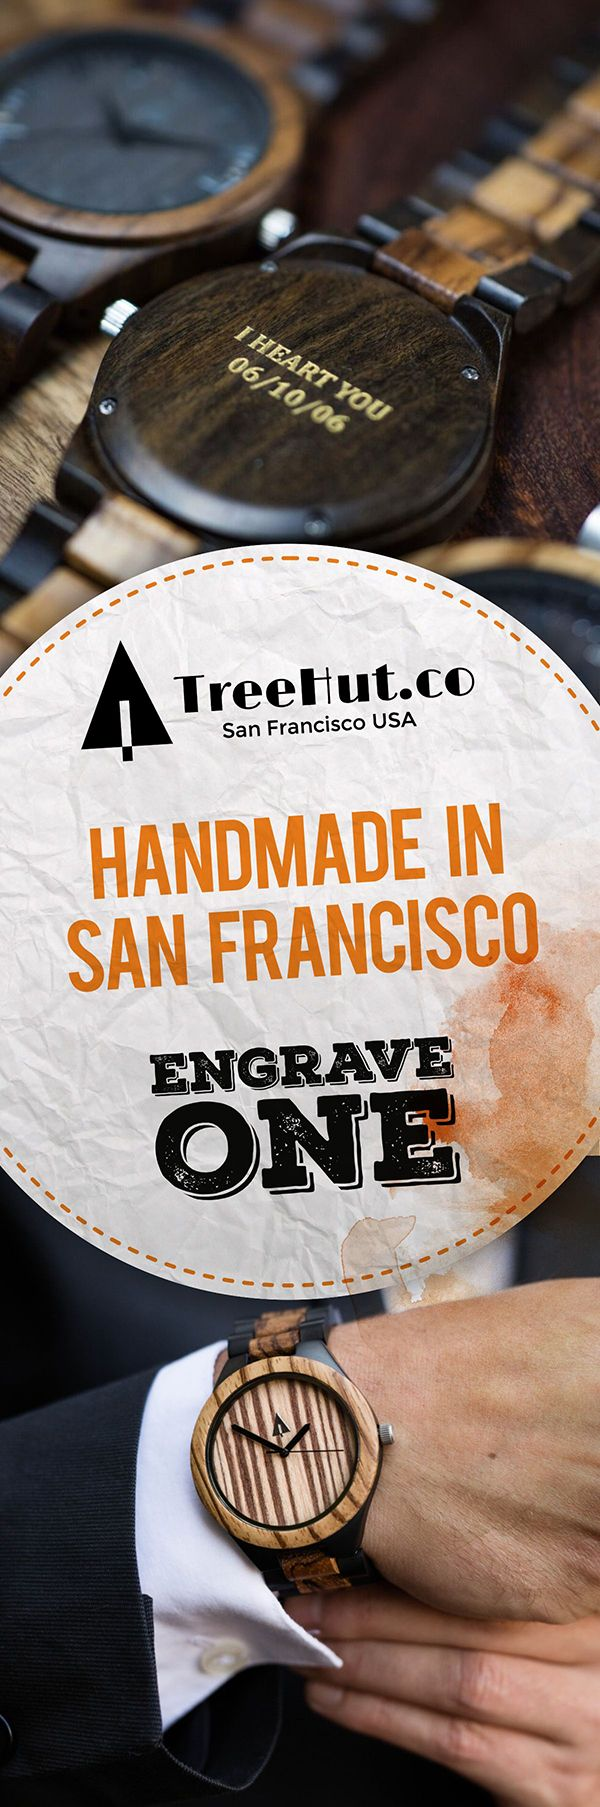 [20% Off Sitewide Birthday Sale] Handcrafted in San Francisco. Nature-inspired designs that make the perfect gift for your special ones! See the full collection at Tree Hut.